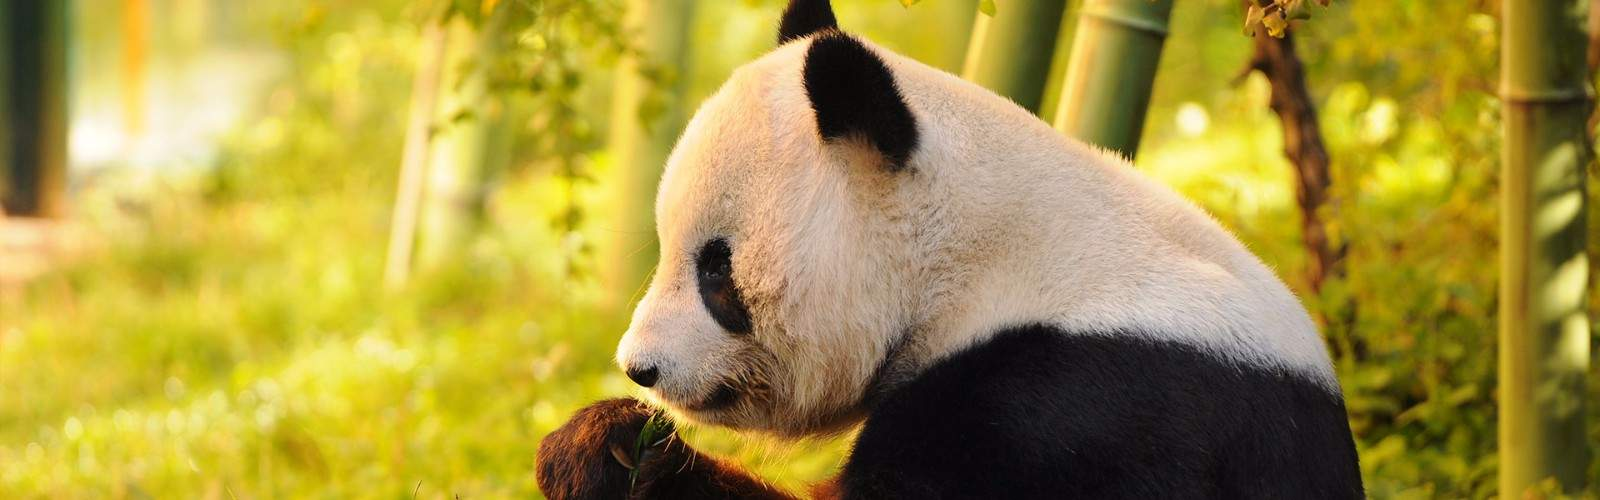 In Pursuit of Pandas Tour | Wendy Wu Tours